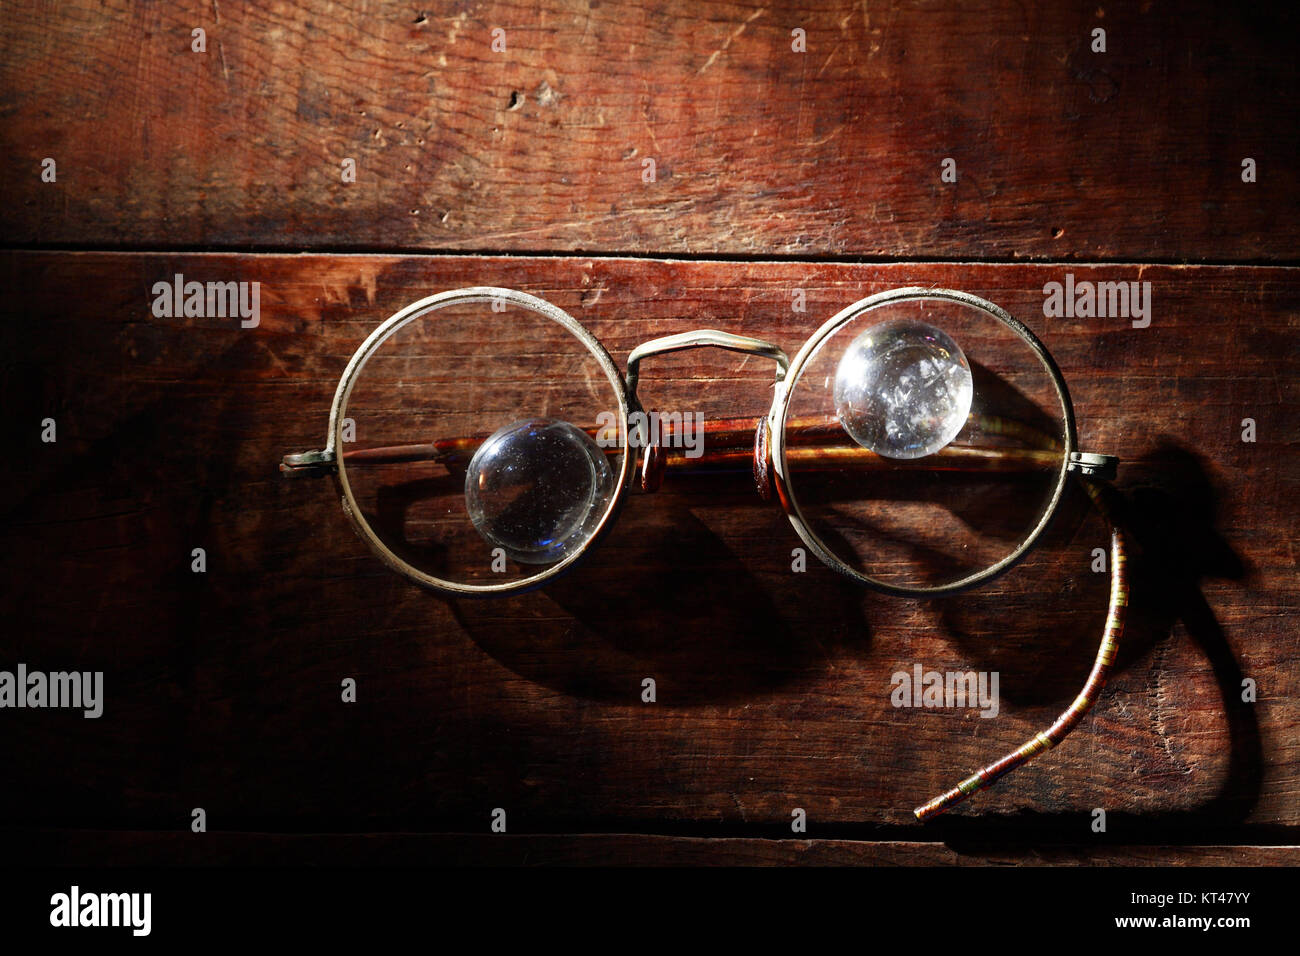 Old stylish spectacles closeup on wooden background - Stock Image